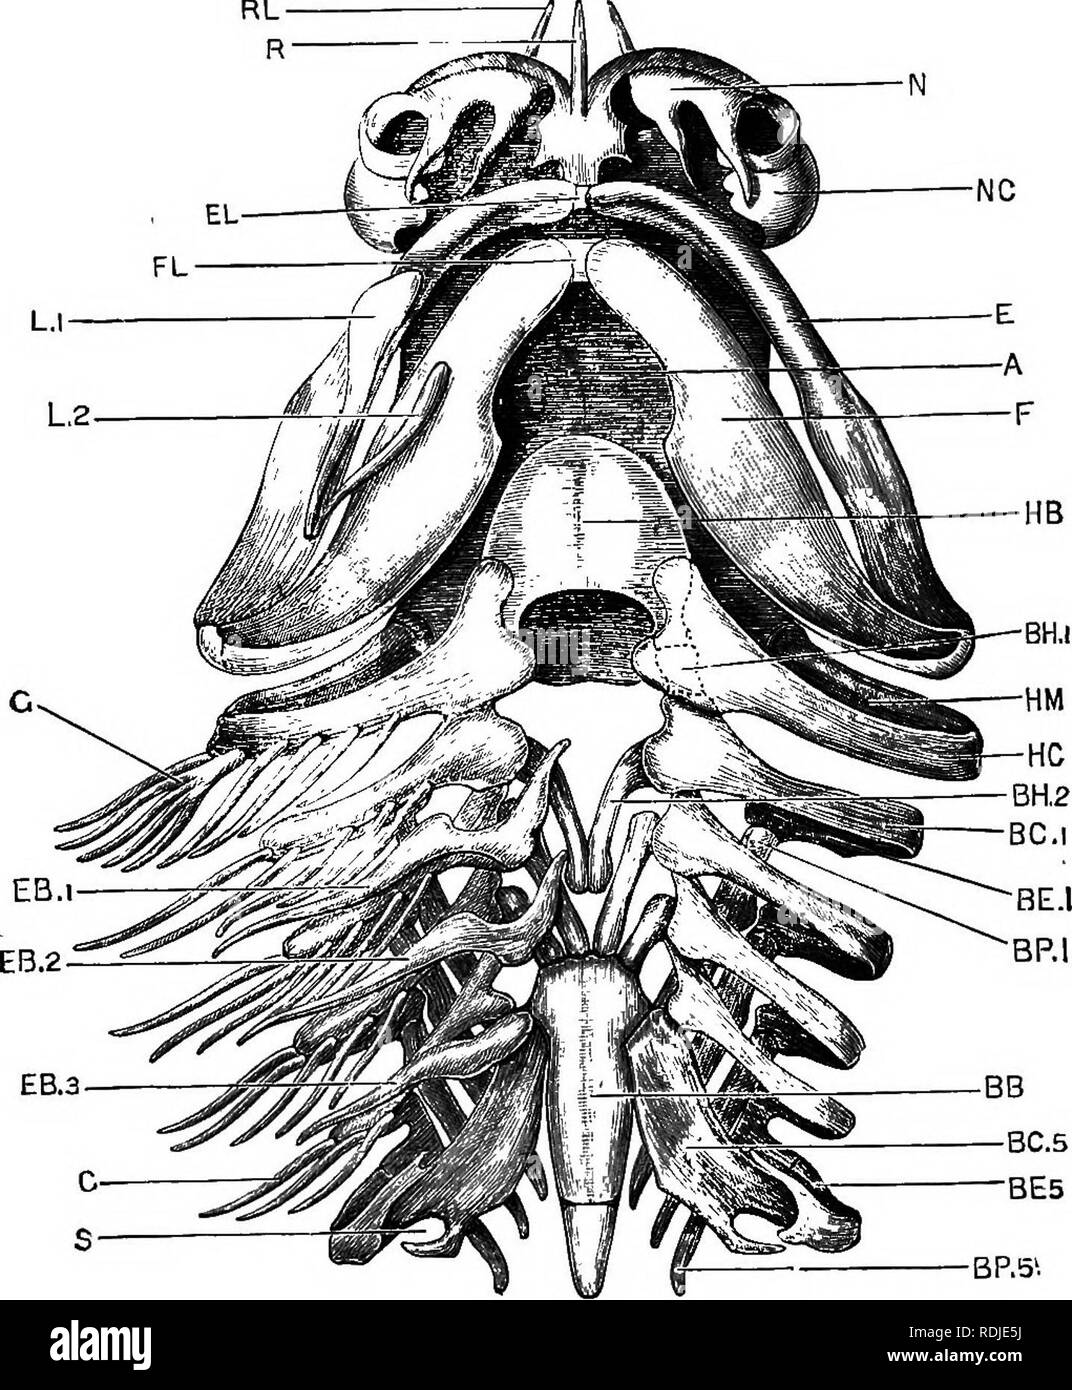 . A junior course of practical zoology. Zoology. 210 THE BOG-I'ISH. Eia. 46. Scyllium canicula. The skull and visceral skeleton seen from the ventral surface. The labial cartilages and gill-rays of the left side have been removed, (a. m. m.) A, base of skull. SB, basi-branchial. BC I'g BC 5, first aud fifth cerato- branchials. BE 1, BE 5. first and fifth epi-branchi^s. BH 1, first hypo- branchial, represented as though seen through the cerato-hyal. BH 2, second hypo-branchial. BP 1, BP 5, first and fiith pharyngo-brauchials. E, upper jaw. BB 1, EB 2, EB 3, first, second, and third extra-brancM - Stock Image